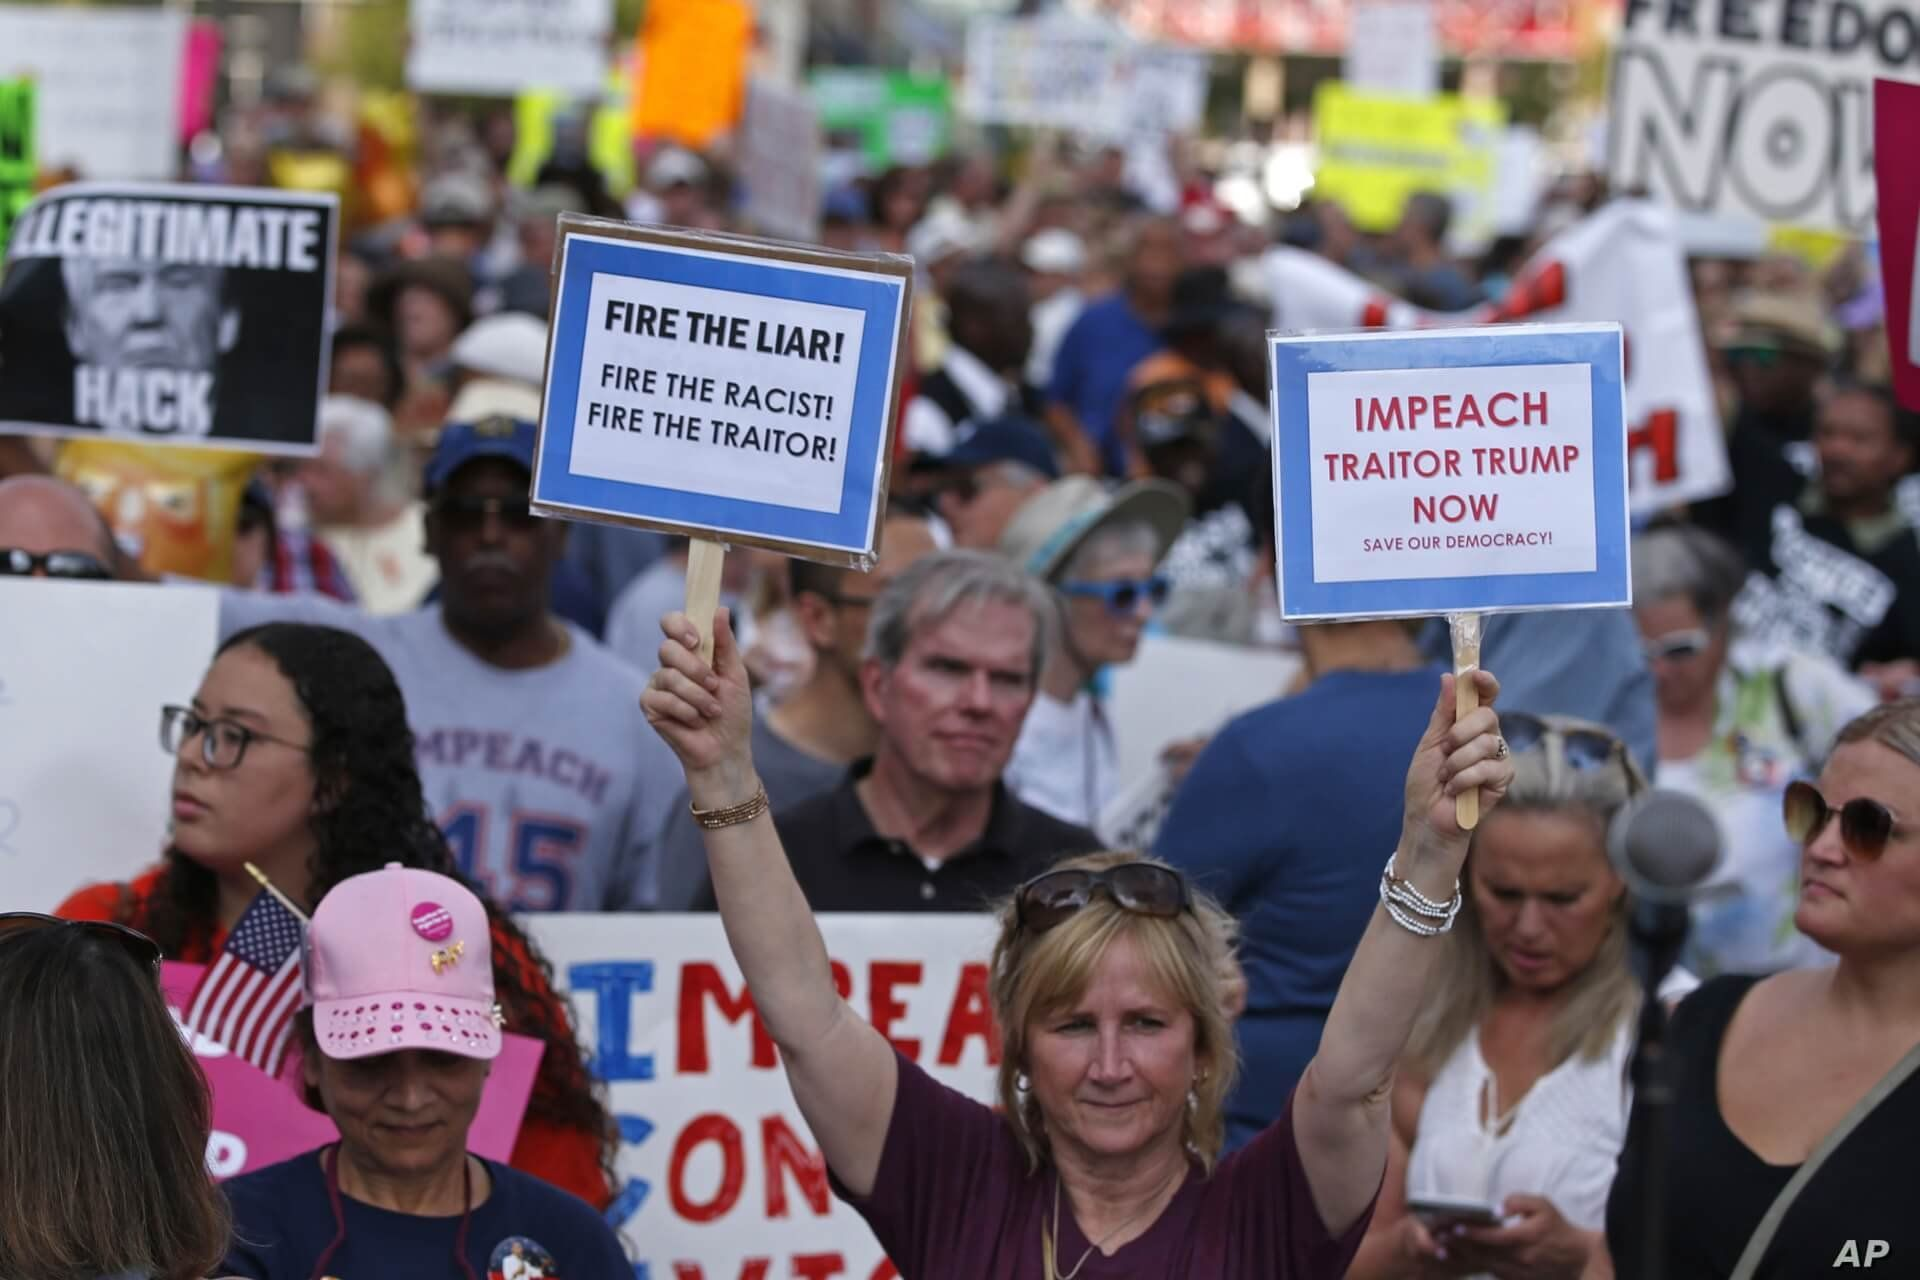 Protesters hold signs during a